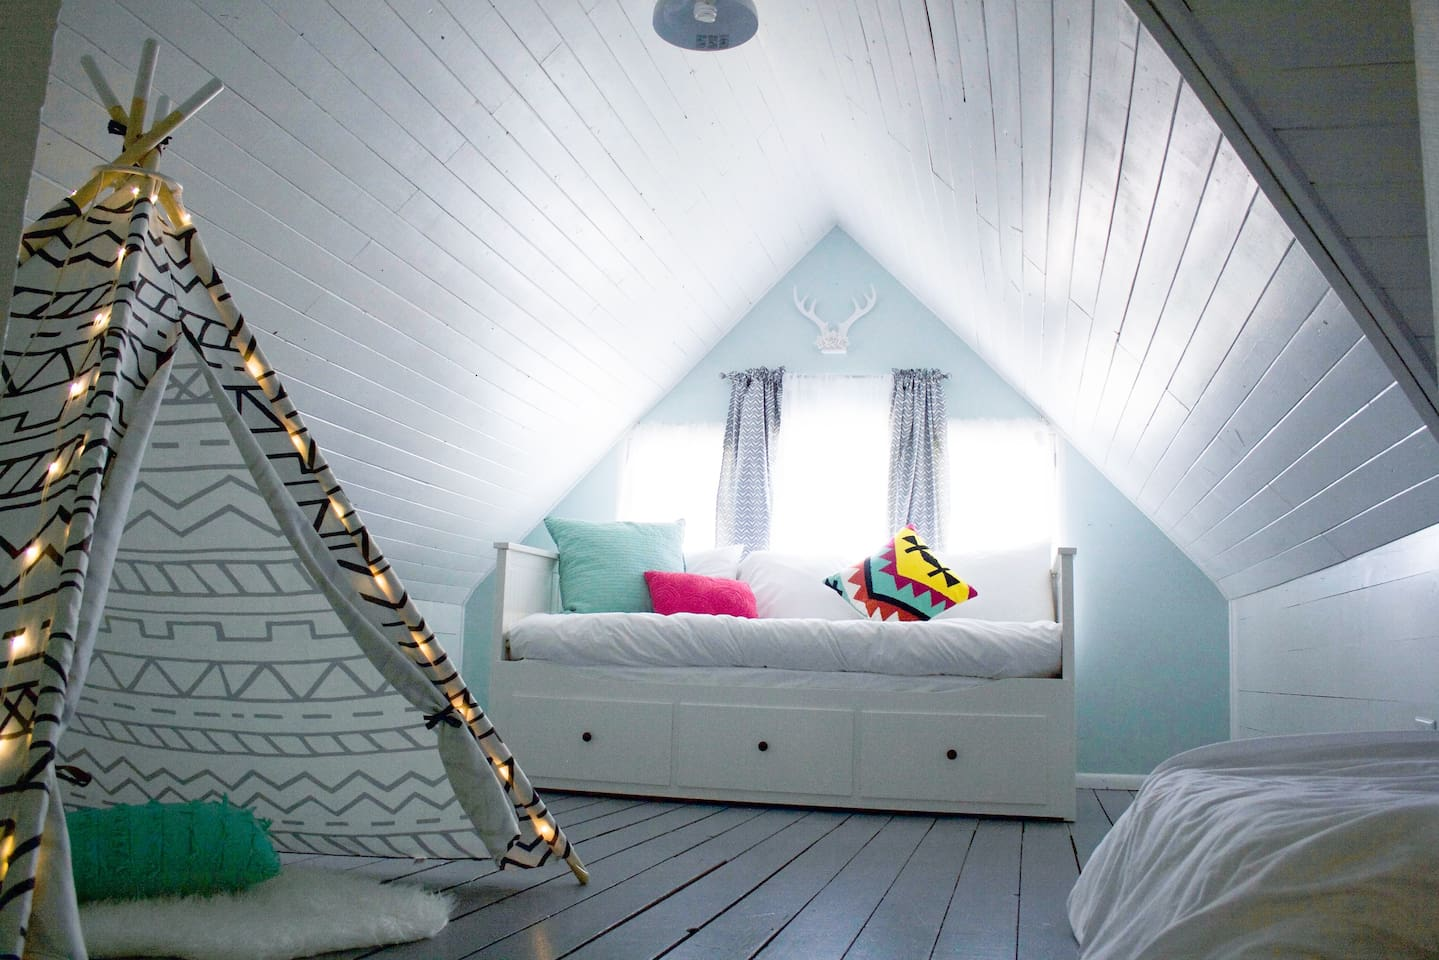 Bedroom #1 - Whimsical attic bedroom with twin daybed that extends into queen size bed, plus 2nd twin memory foam bed, play teepee, and downtown views! (Bedroom #1 and #2 are connected, which can be great for families traveling with children)